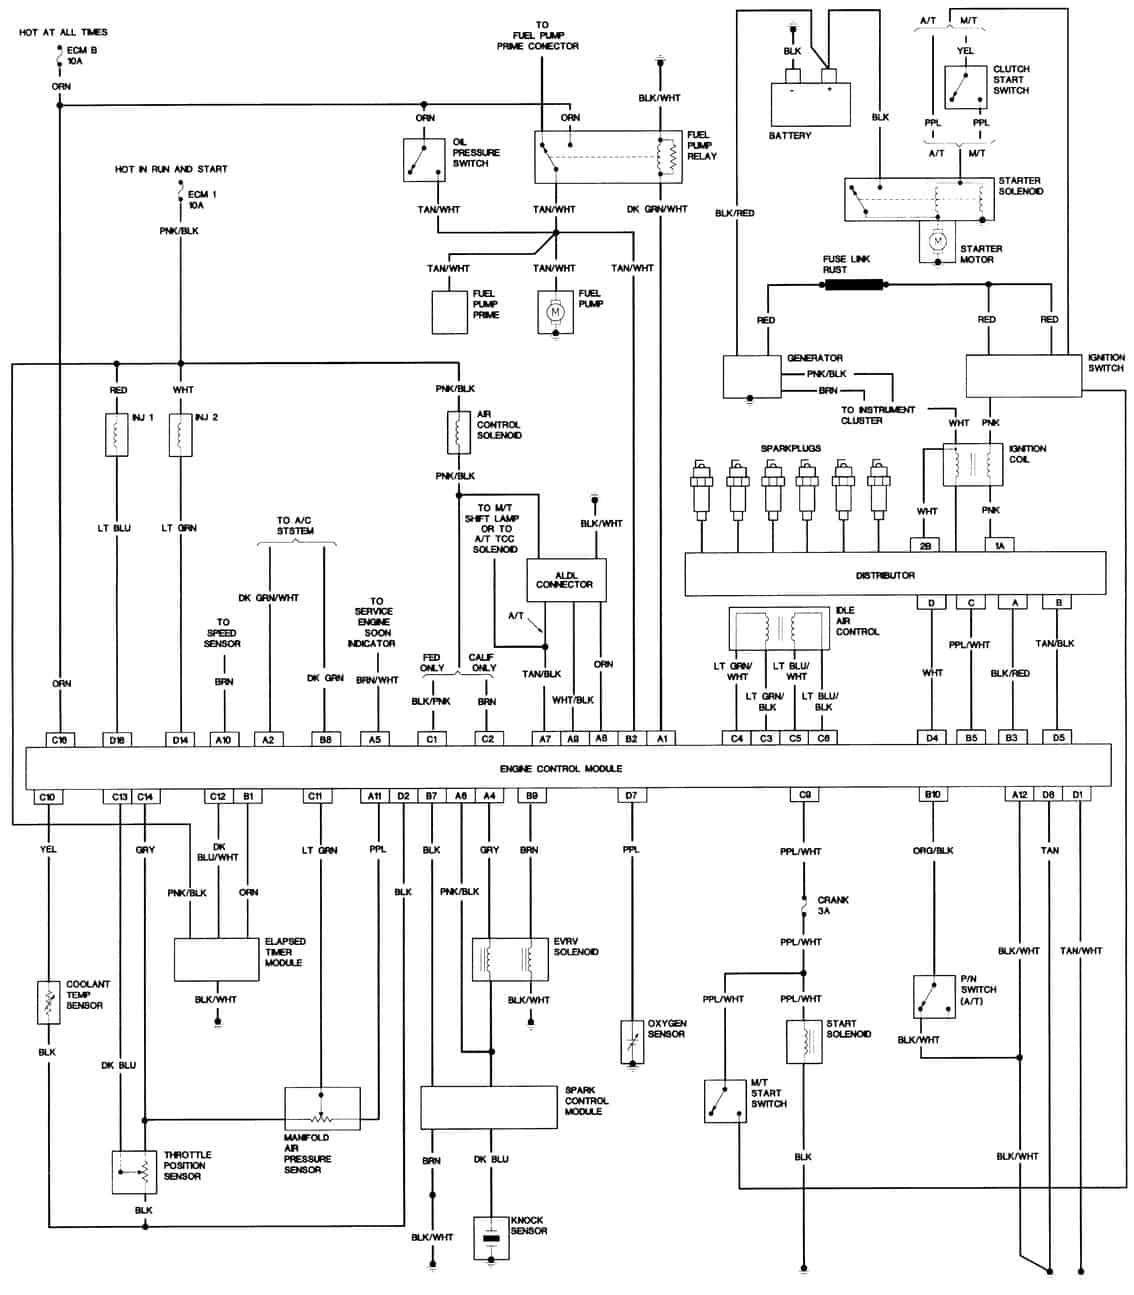 1993 Gmc Jimmy Engine Diagram Car Wiring Diagrams Explained 1973 Chevy Camaro Free Picture V6 Vehicle U2022 Rh Addone Tw 1992